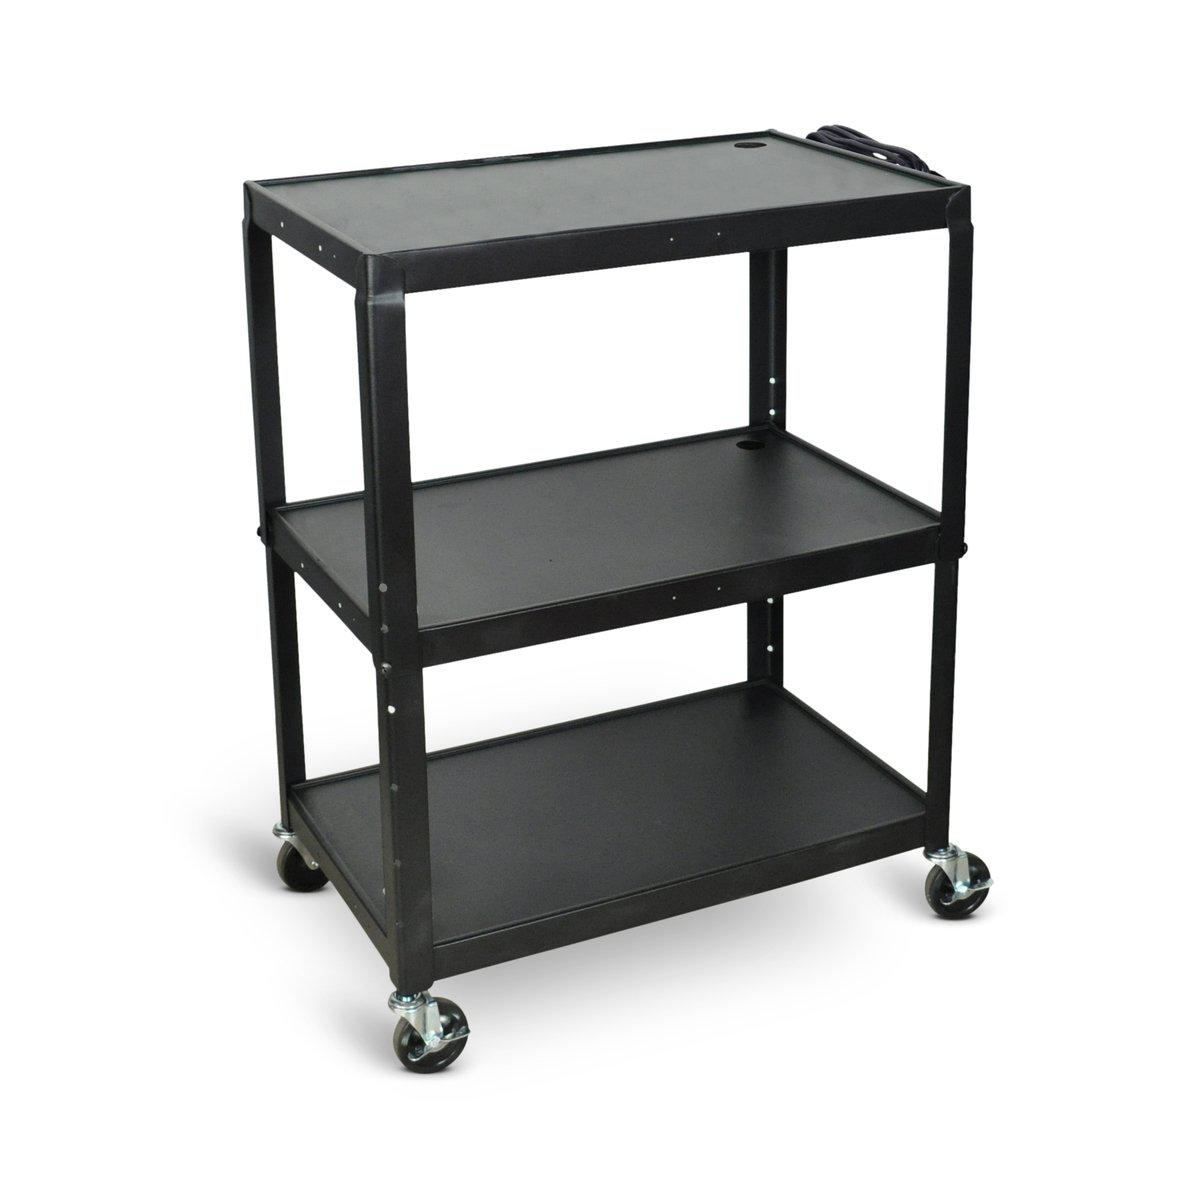 Extra-Large Adjustable-Height Steel AV Cart